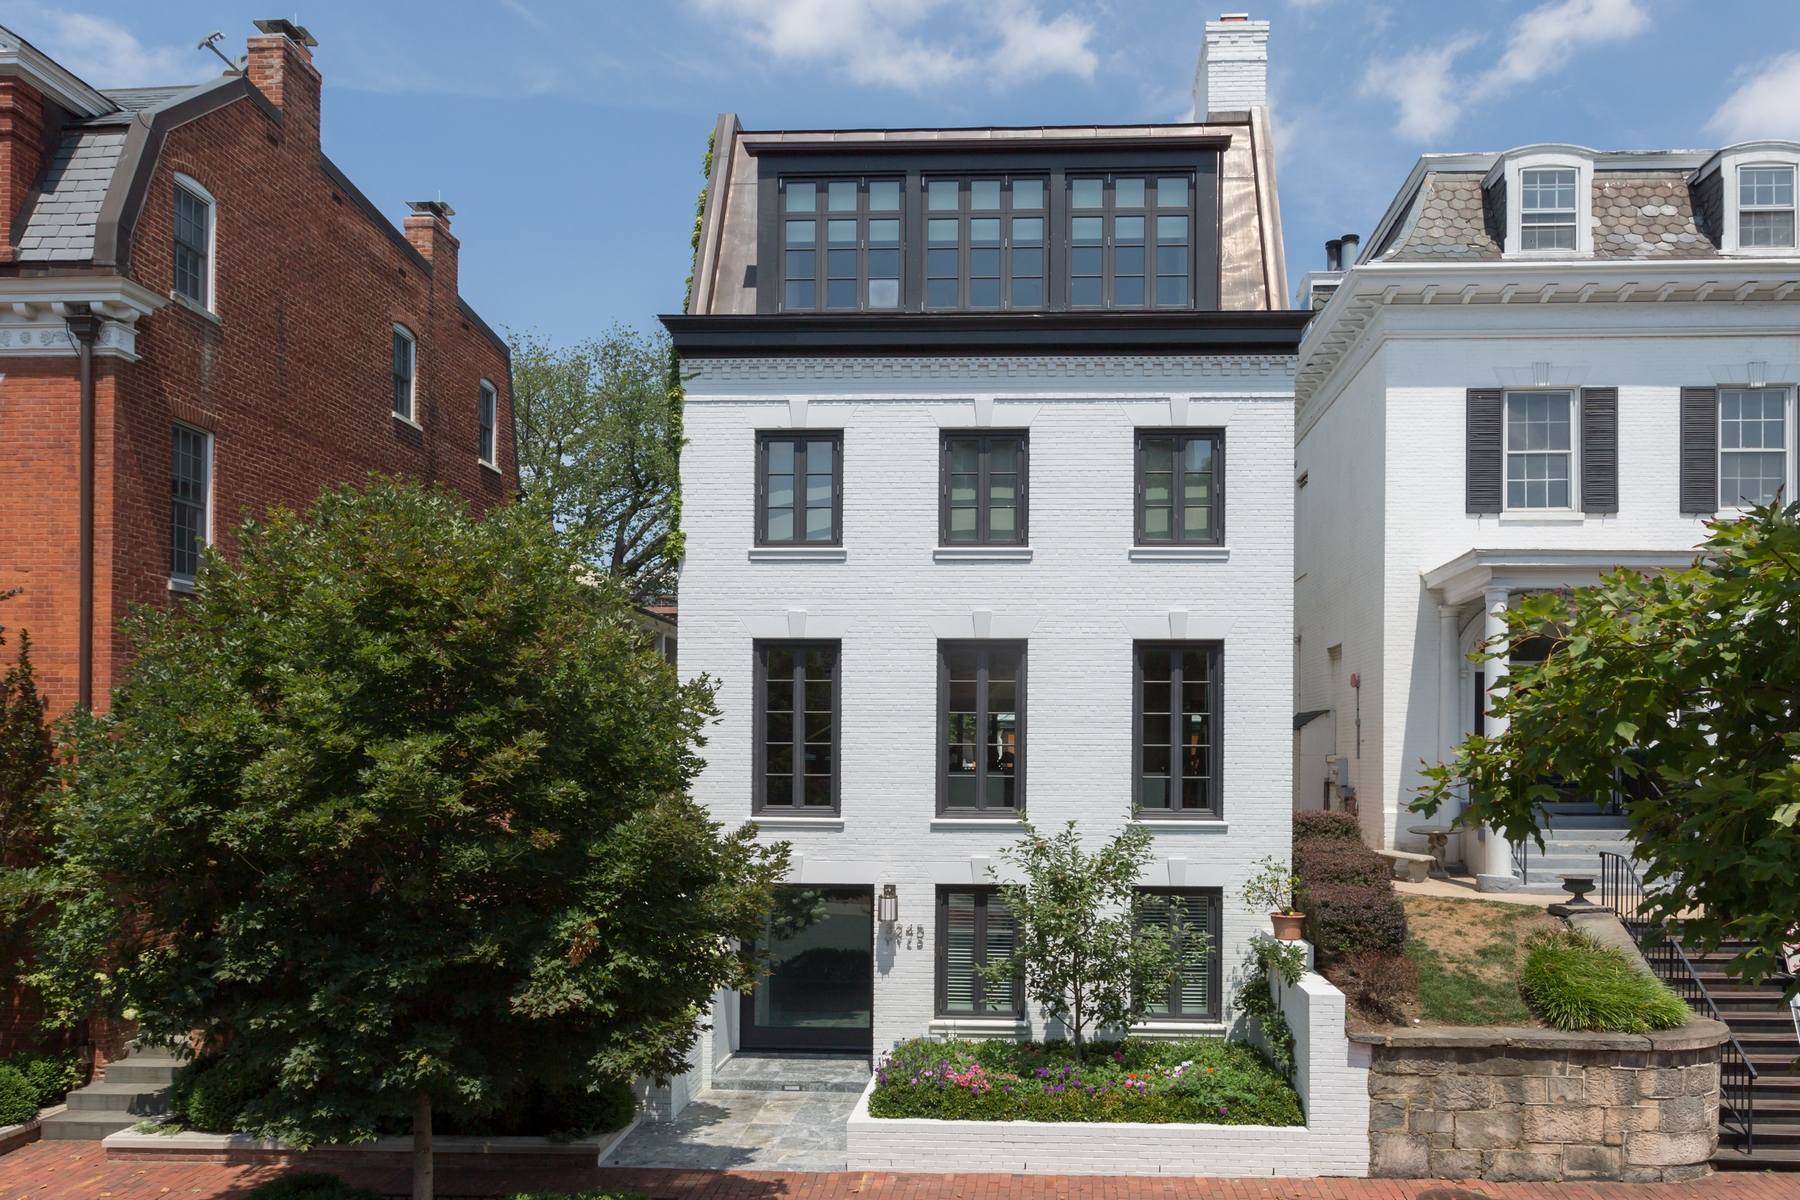 Single Family Home for Active at Georgetown 3245 N Street NW Washington, District Of Columbia 20007 United States